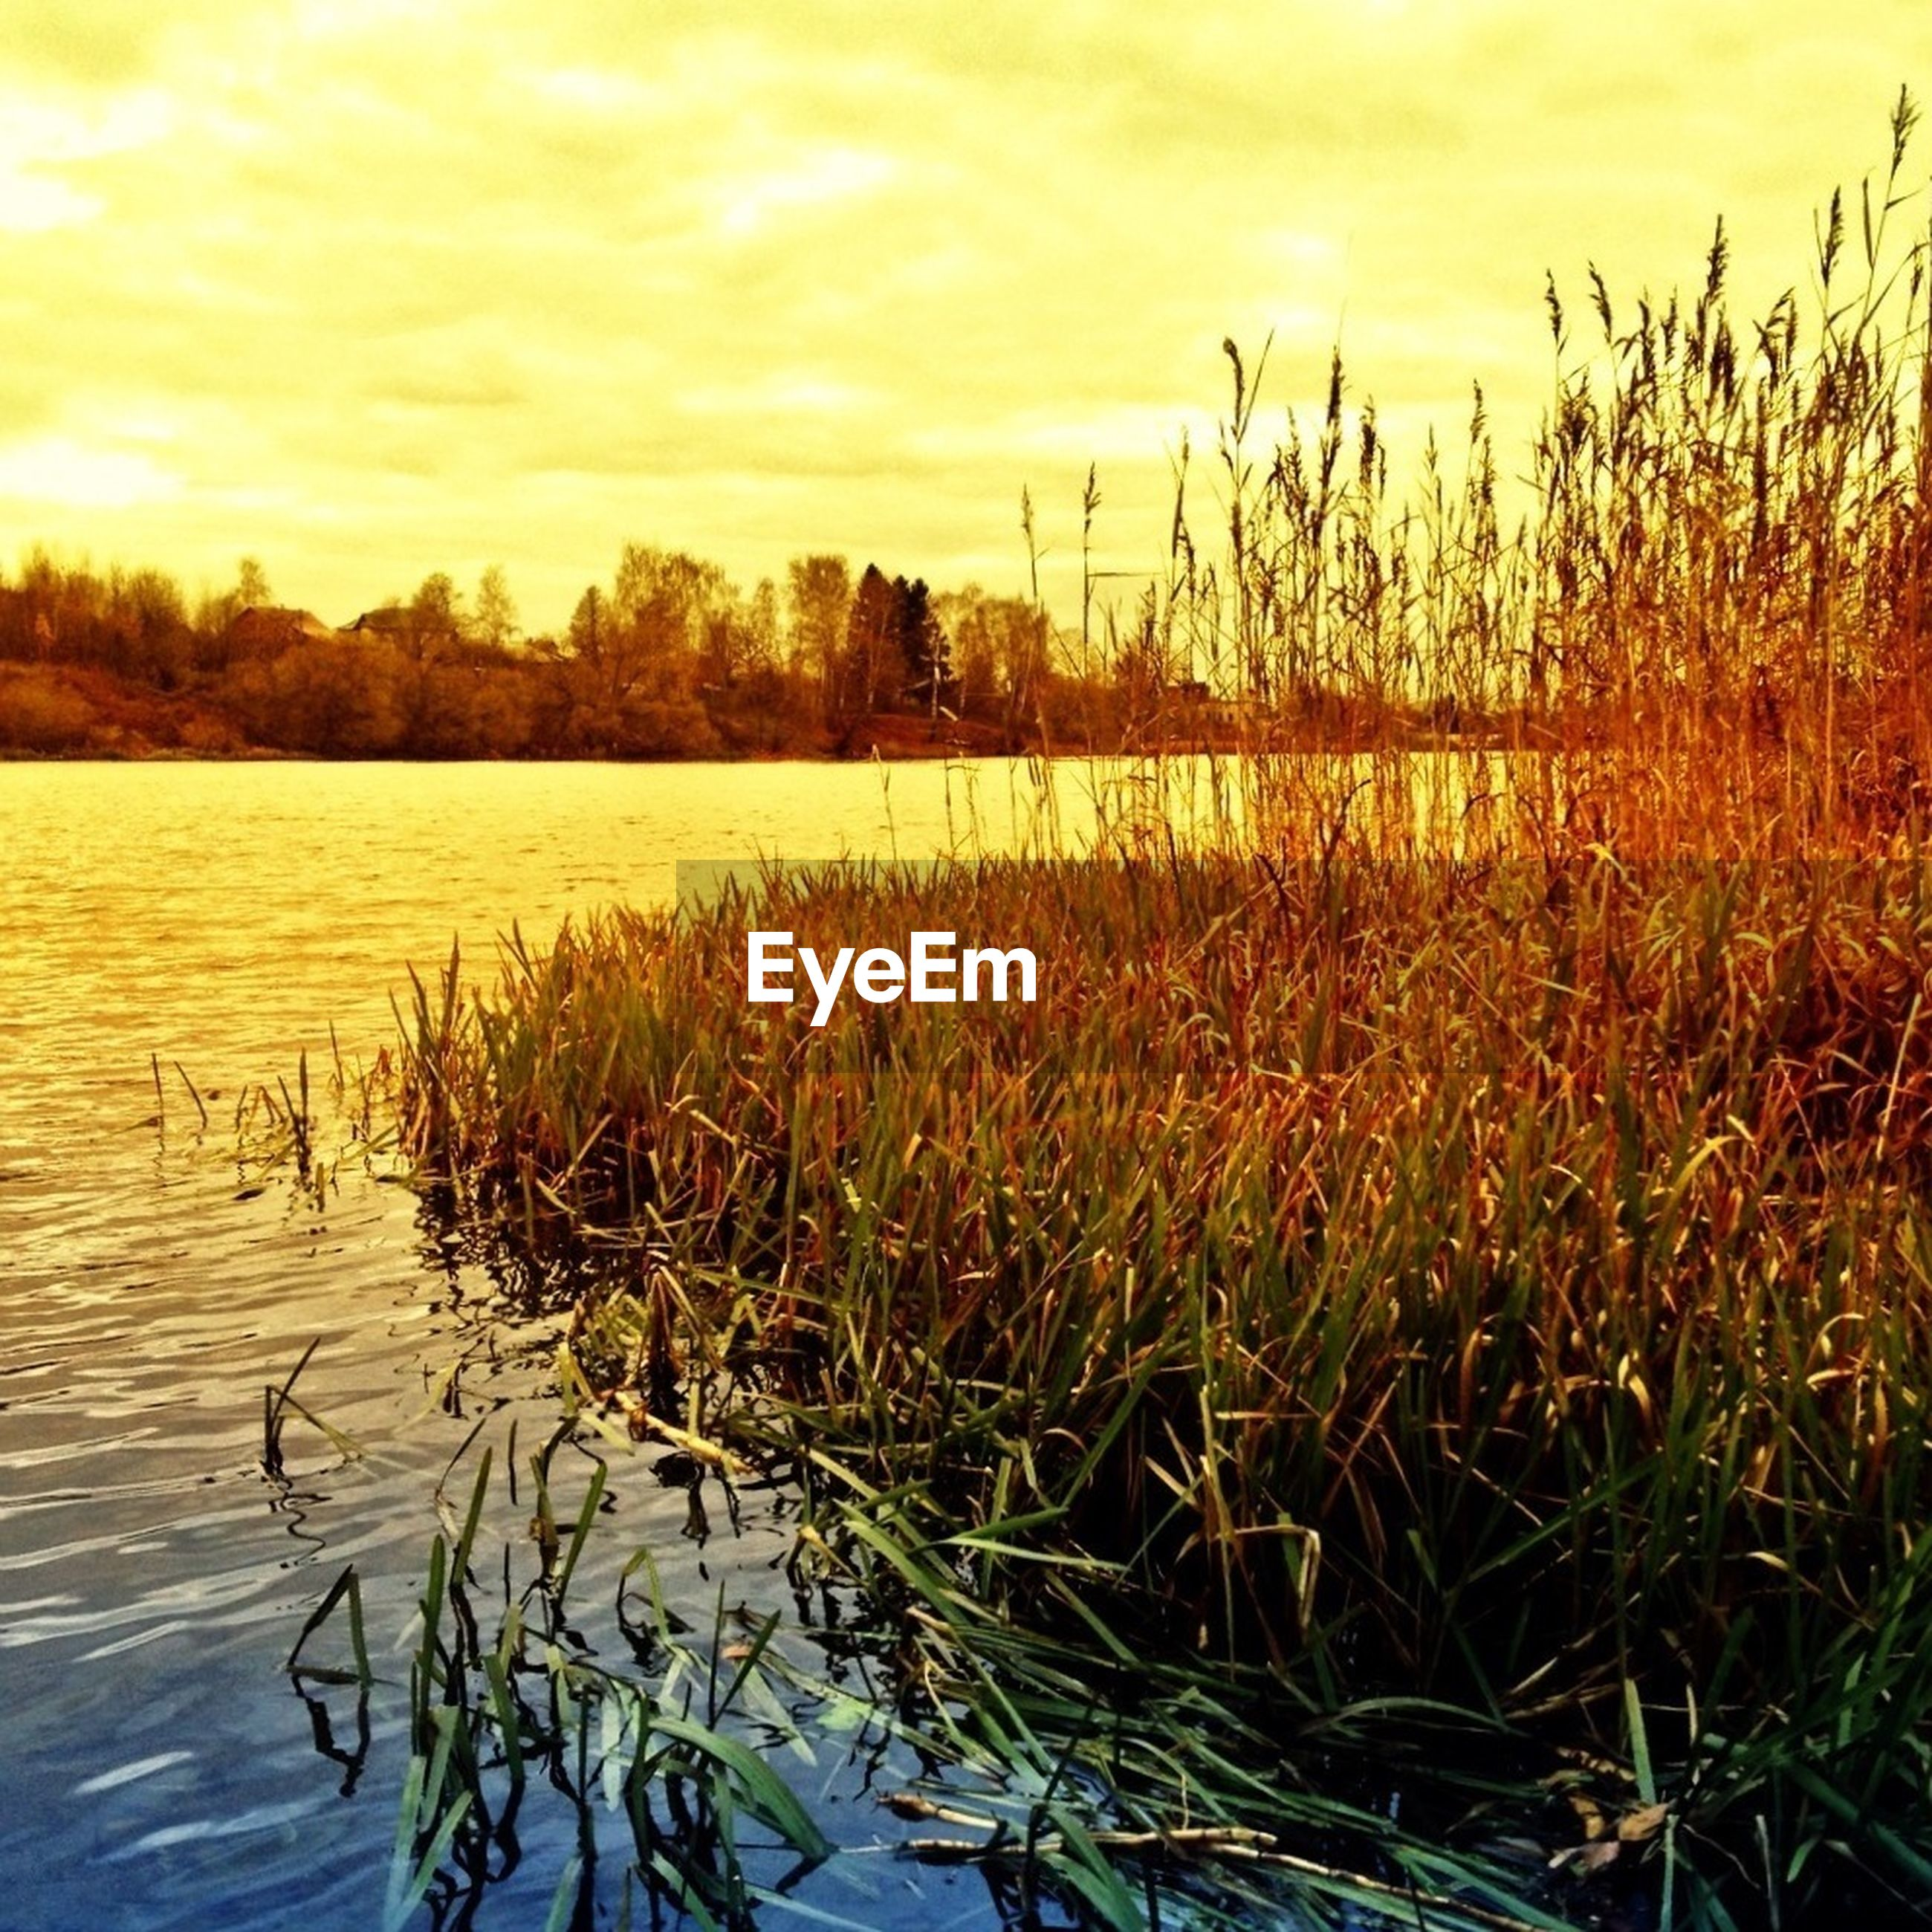 sunset, sky, water, tranquility, tranquil scene, grass, beauty in nature, lake, plant, nature, scenics, growth, cloud - sky, reflection, cloud, idyllic, cloudy, outdoors, no people, field